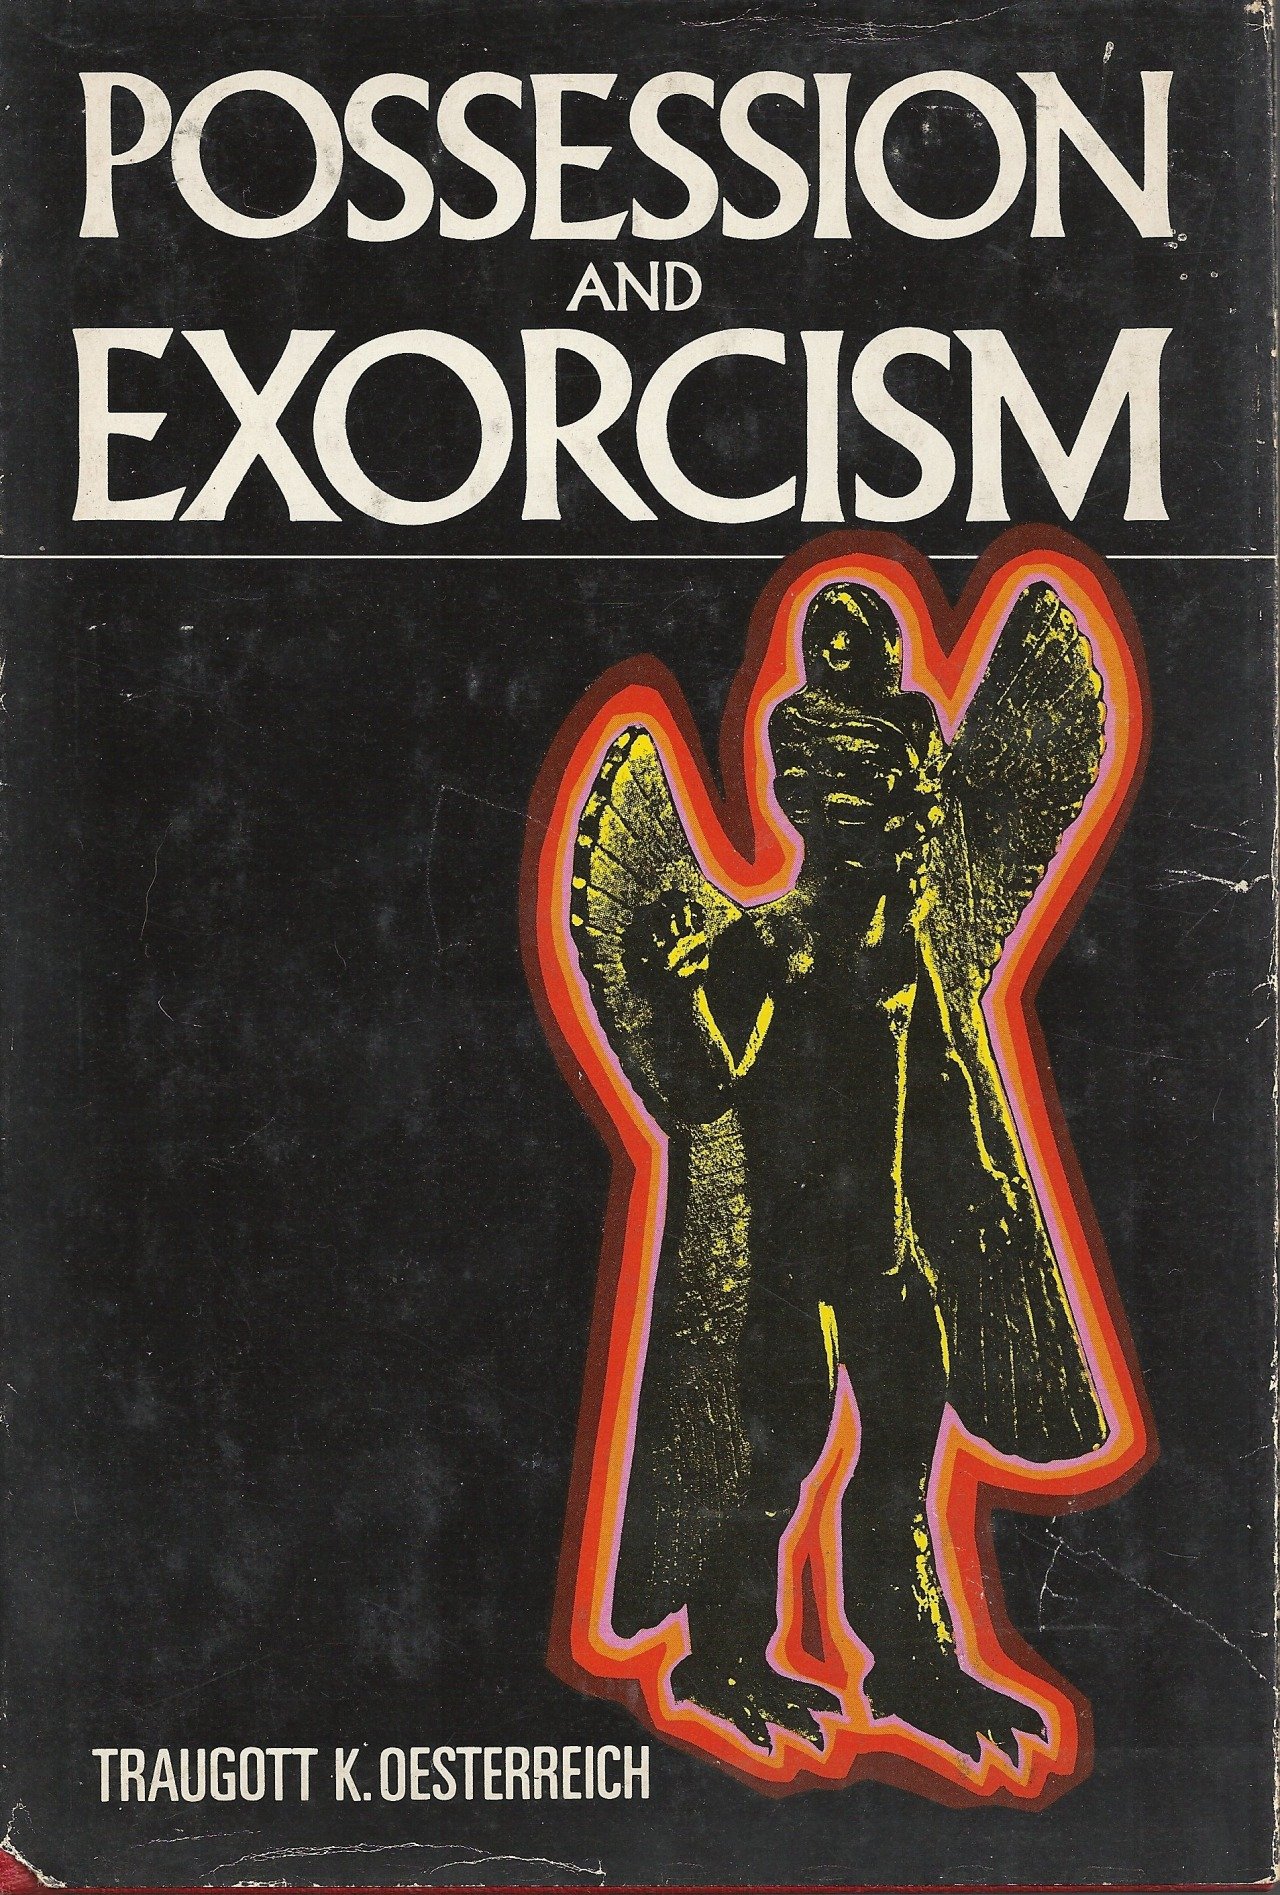 Possession and Exorcism by Traugott K. Oesterreich